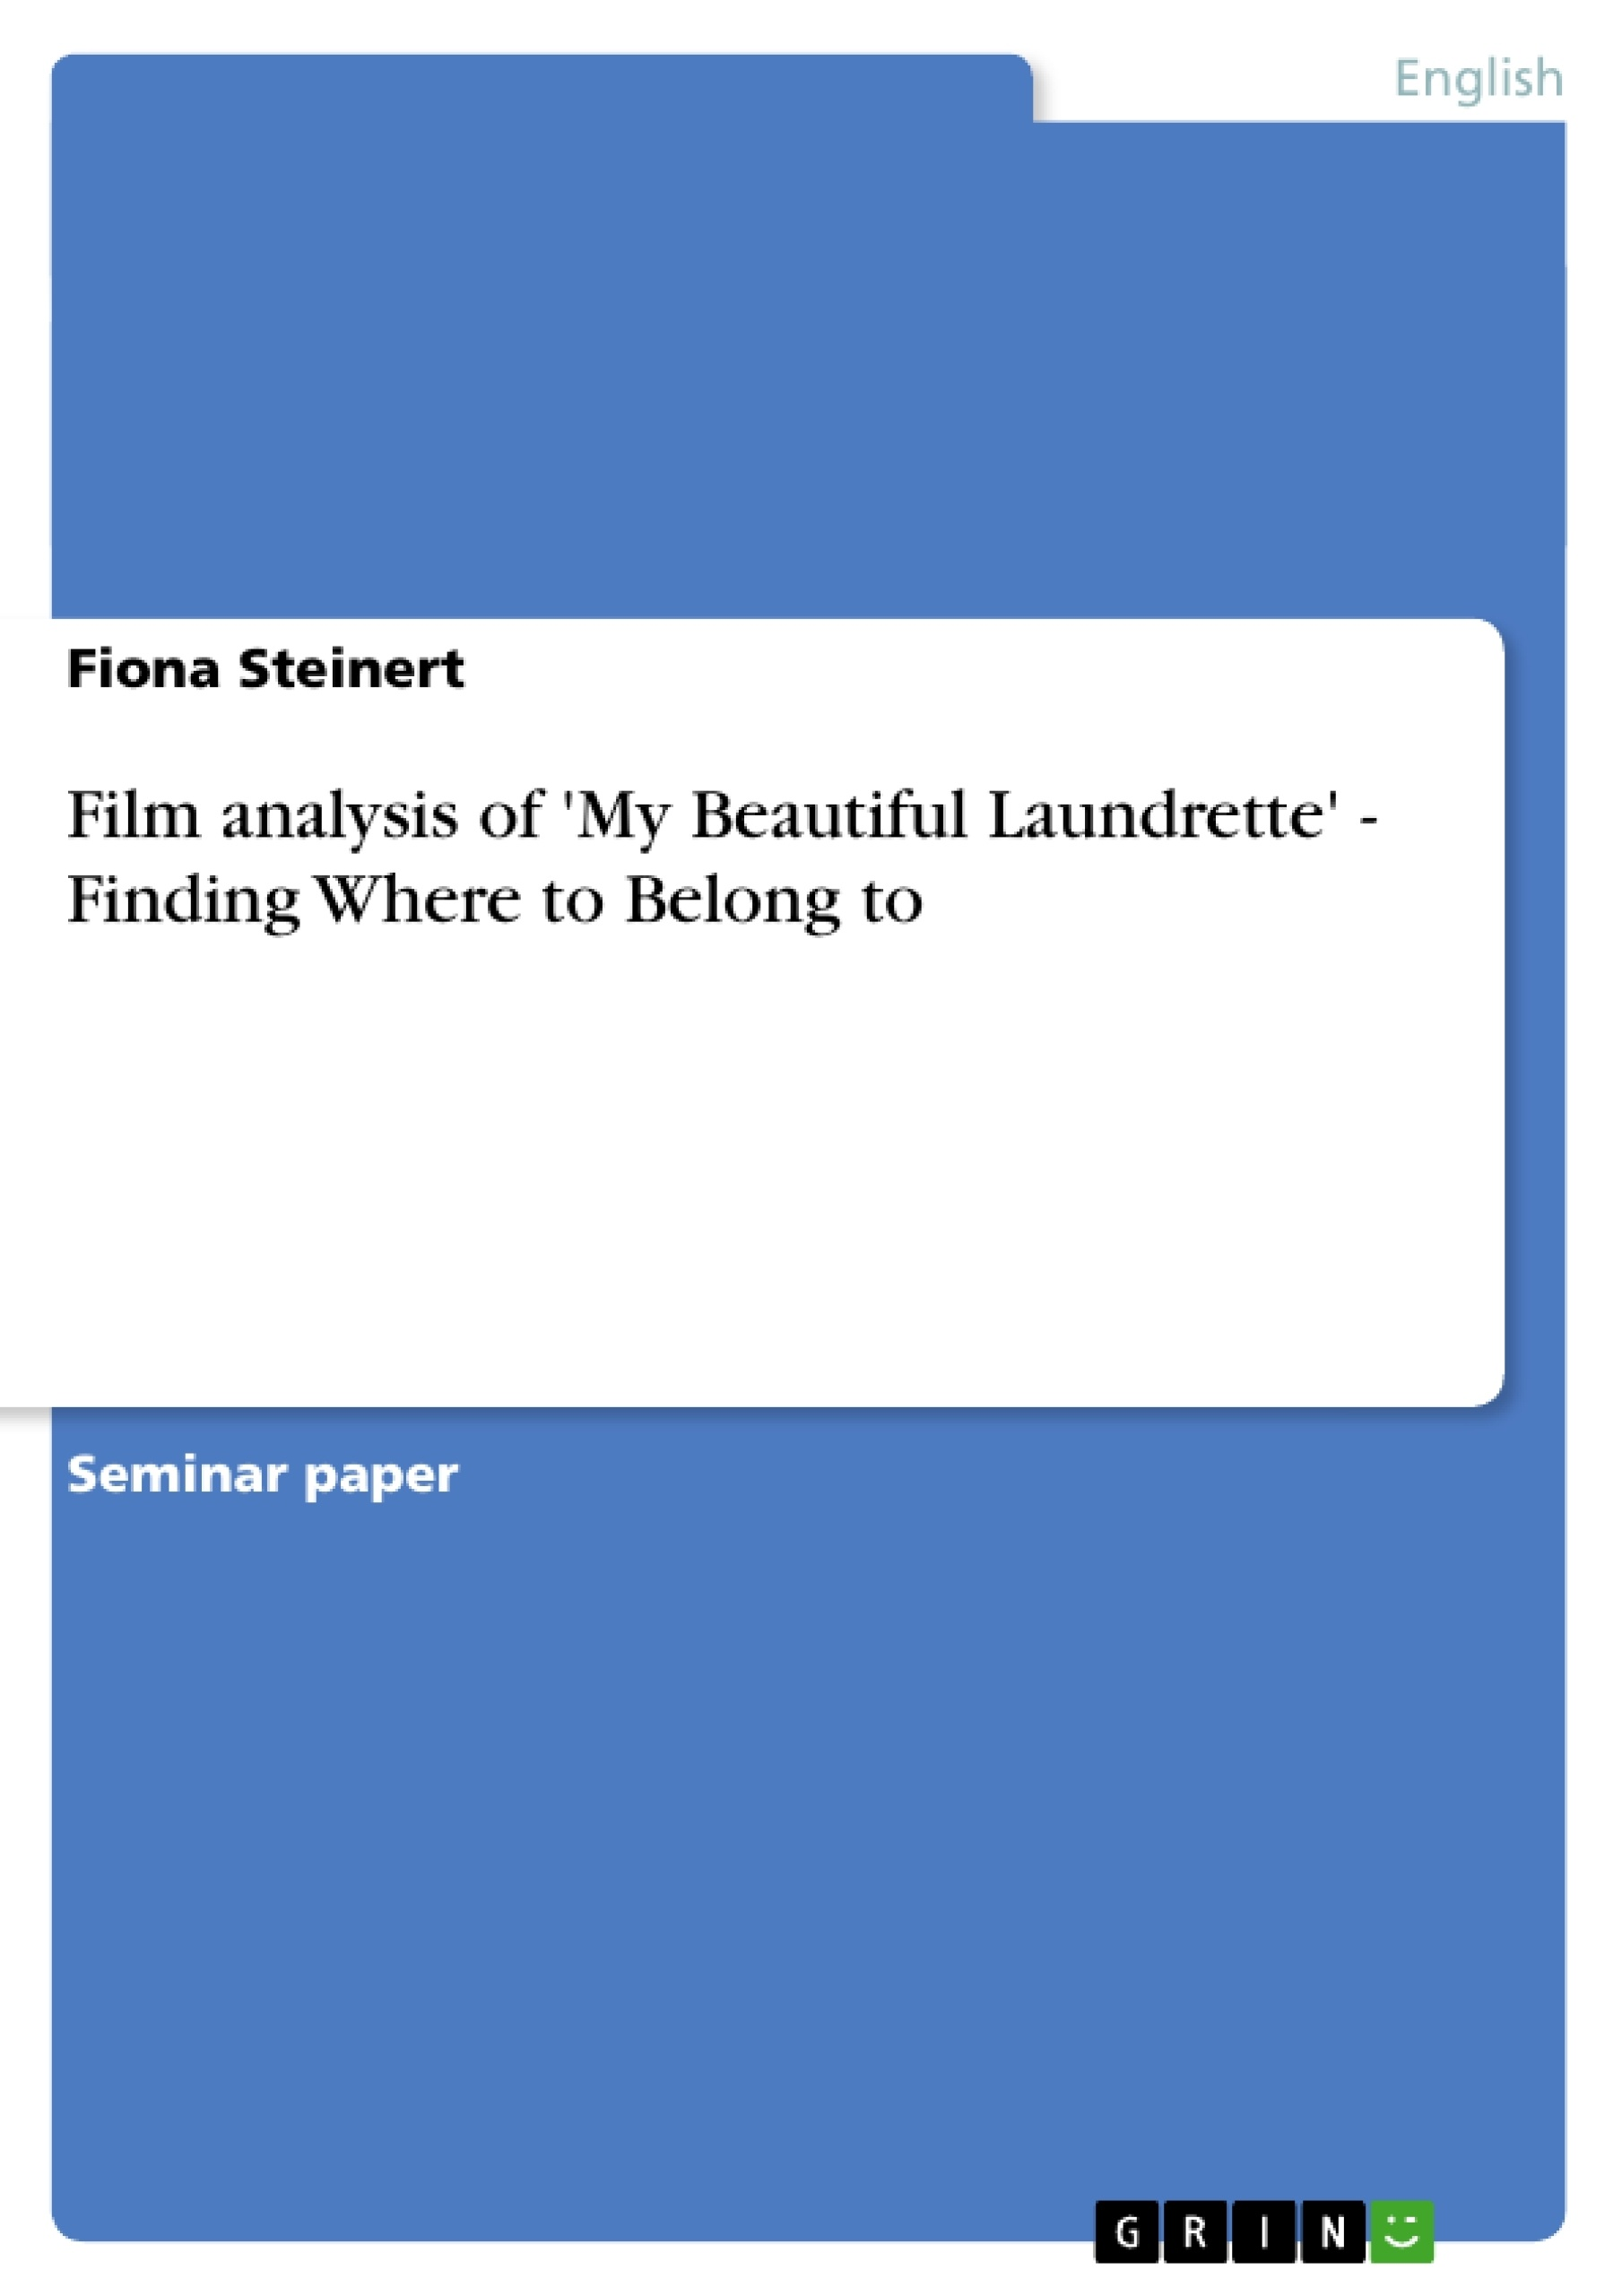 Title: Film analysis of 'My Beautiful Laundrette' - Finding Where to Belong to